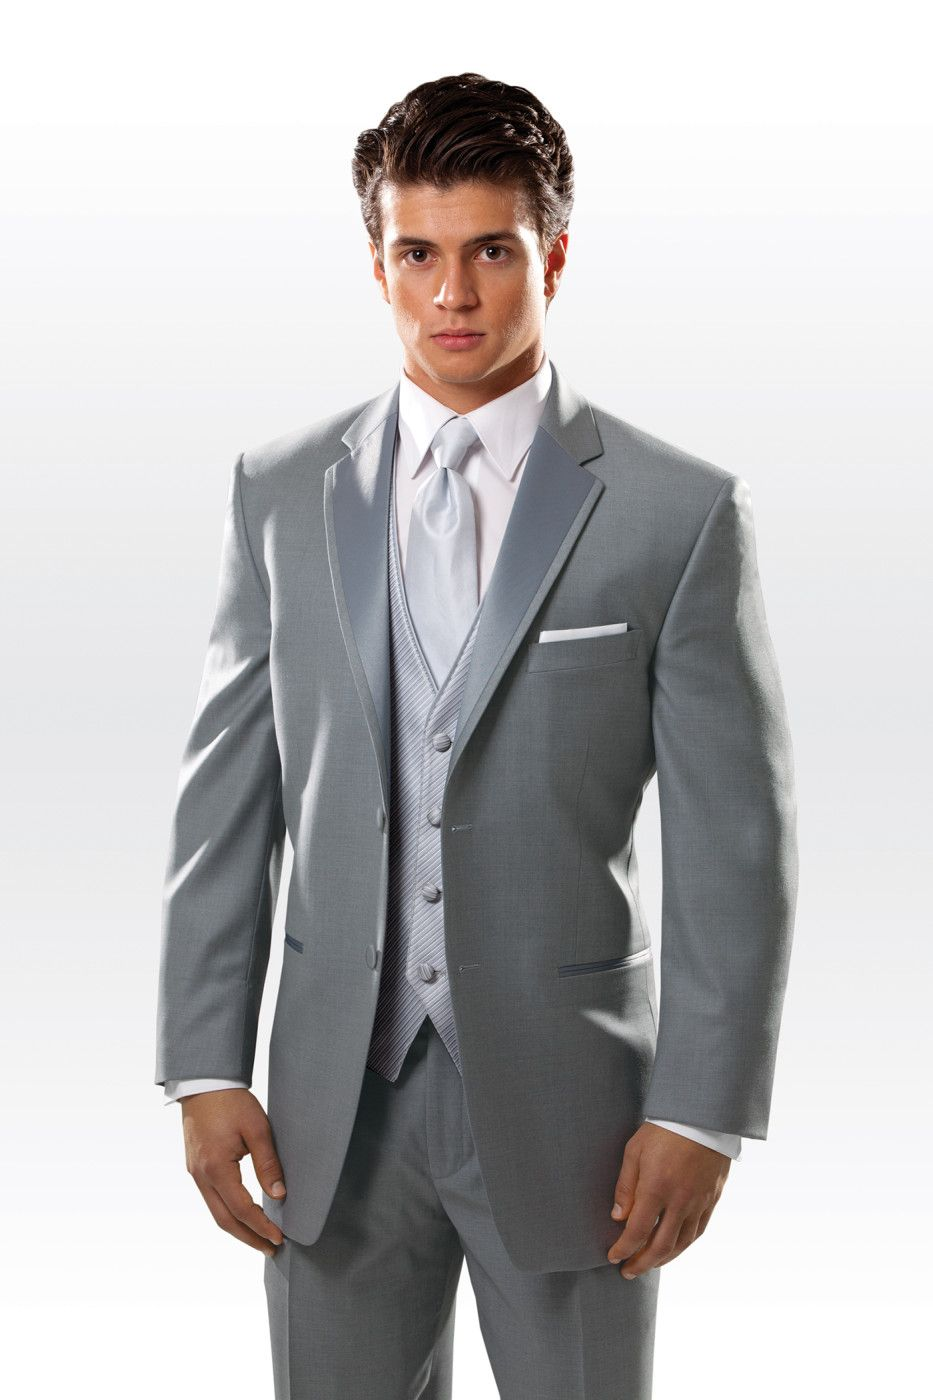 Tuxedo idea; Dark grey/silver w/ Blue accents to match bridesmaids ...